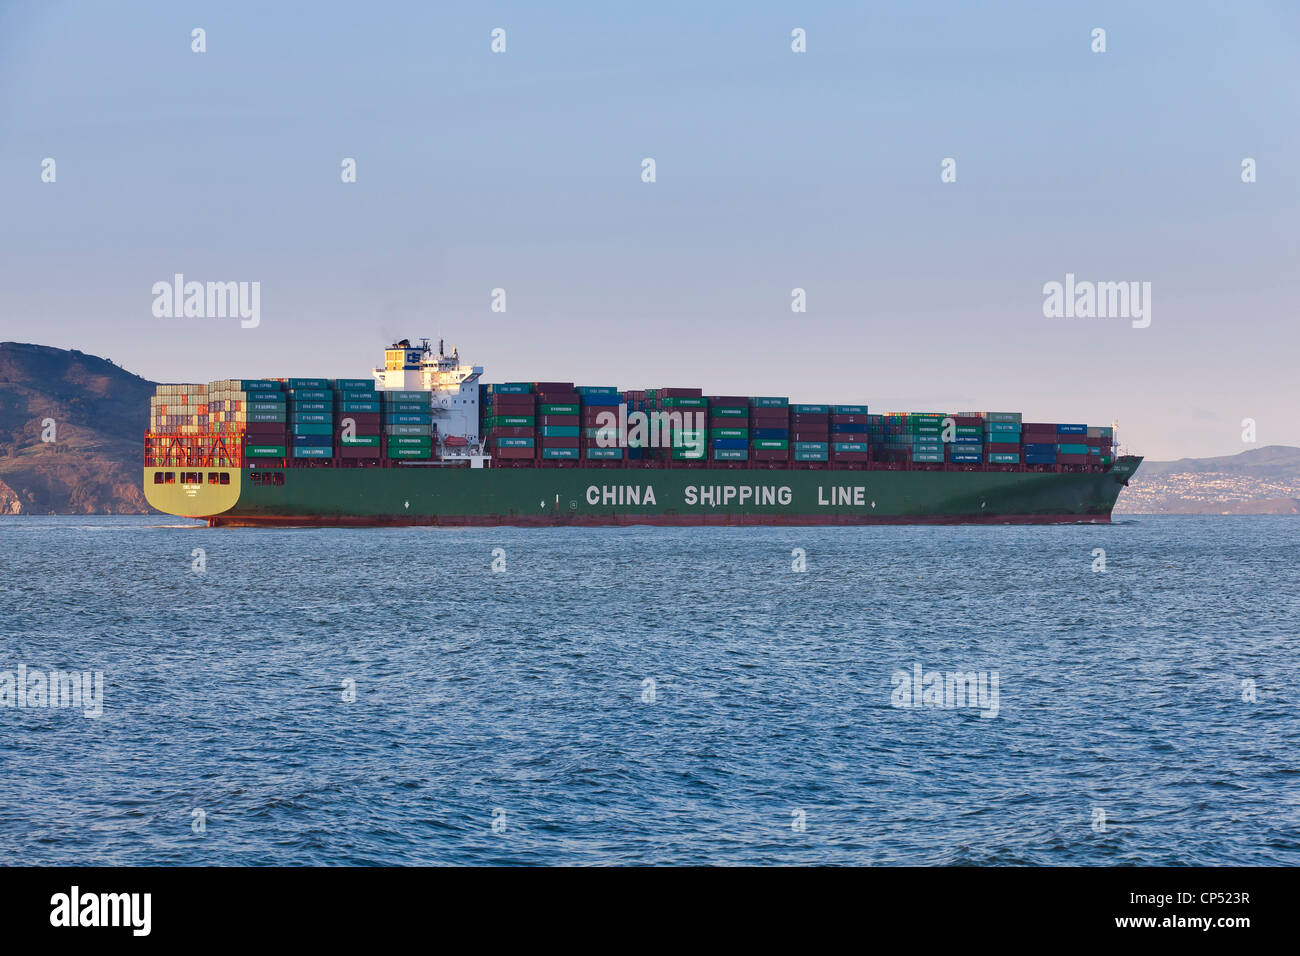 A China Shipping Line freighter ship full of cargo entering US port - San Francisco, California USA - Stock Image